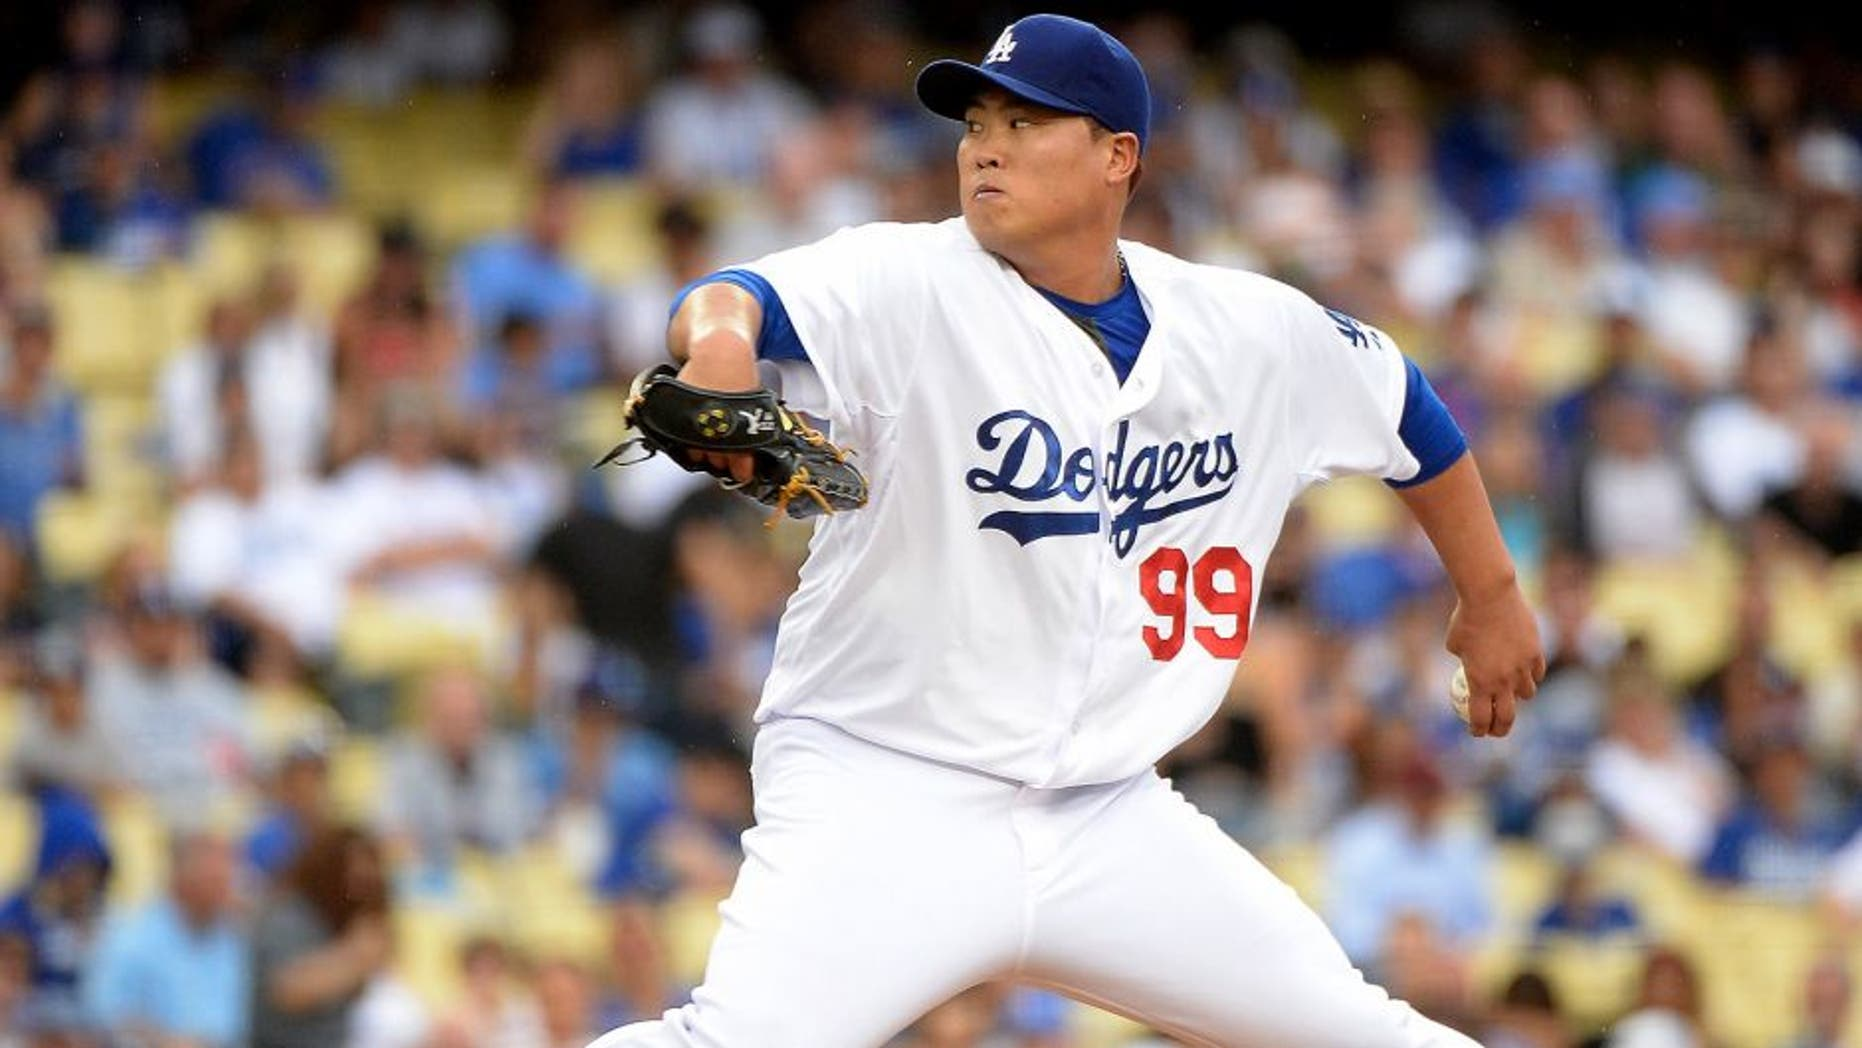 LOS ANGELES, CA - AUGUST 02: Hyun-Jin Ryu #99 of the Los Angeles Dodgers pitches against the Chicago Cubs during the first inning at Dodger Stadium on August 2, 2014 in Los Angeles, California. (Photo by Harry How/Getty Images)